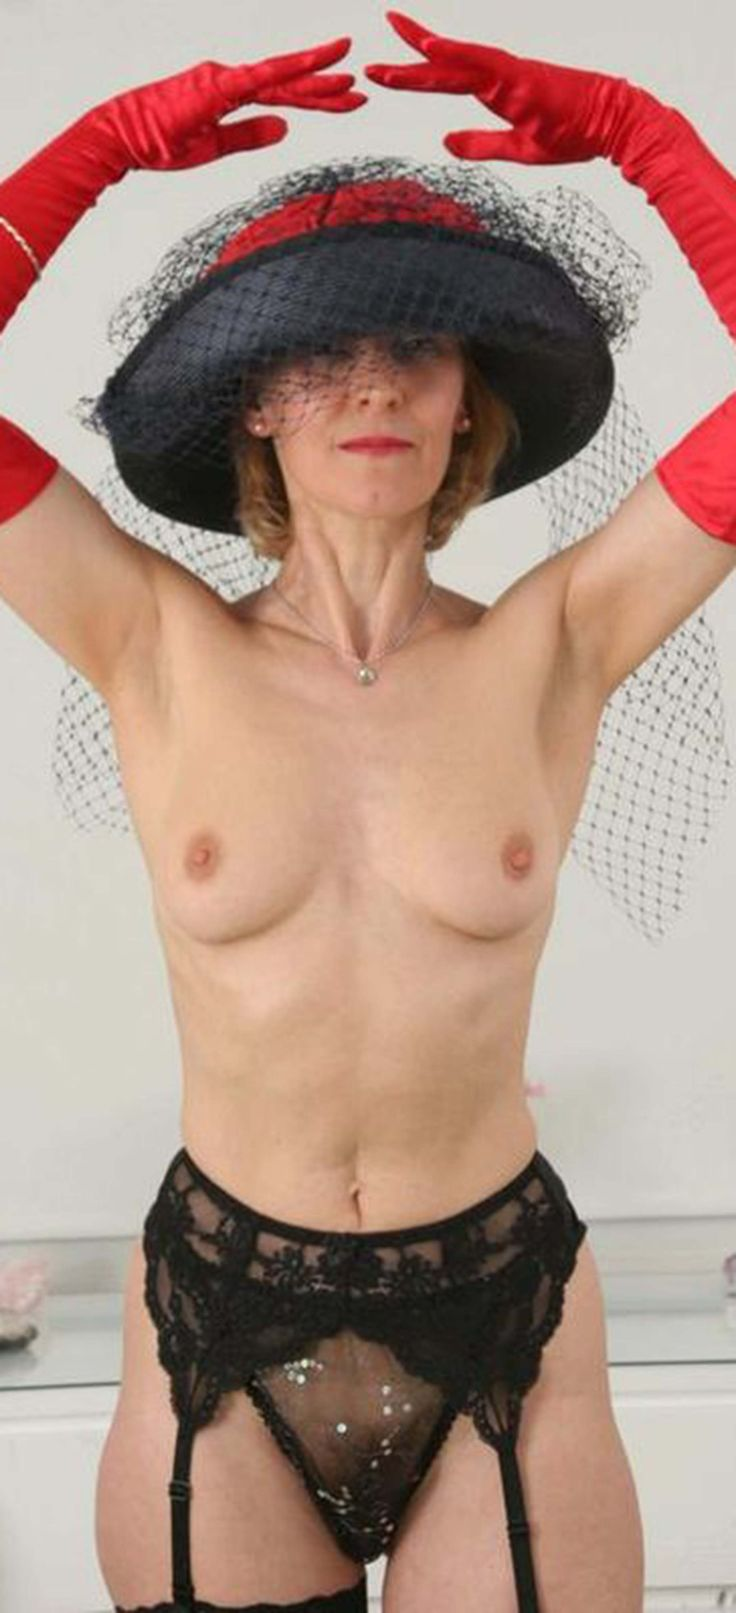 Can say Amateur Mature Fuck und Gesichtsbehandlung! have more